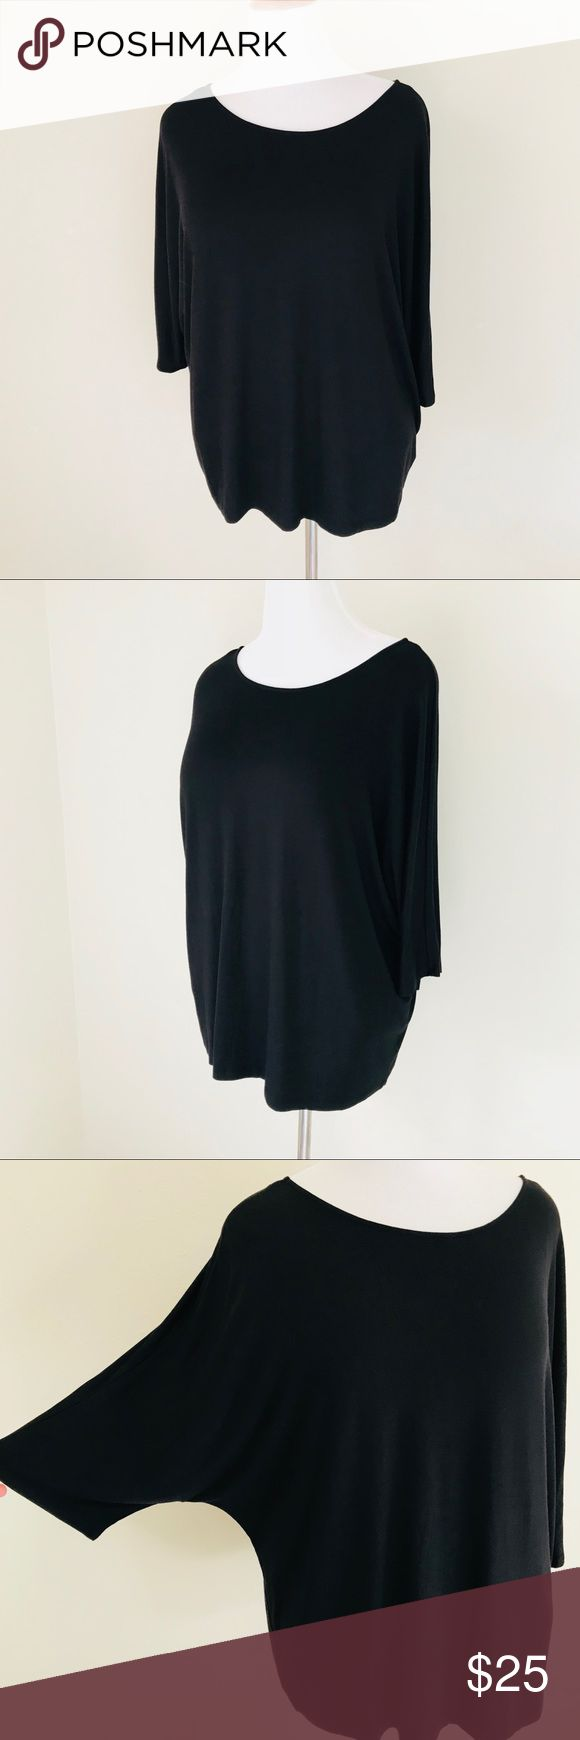 "Worthington Black batwing Top Worthington Black 3/4 batwing sleeve top New with Tag!  Length 27"" Size XL Worthington Tops"